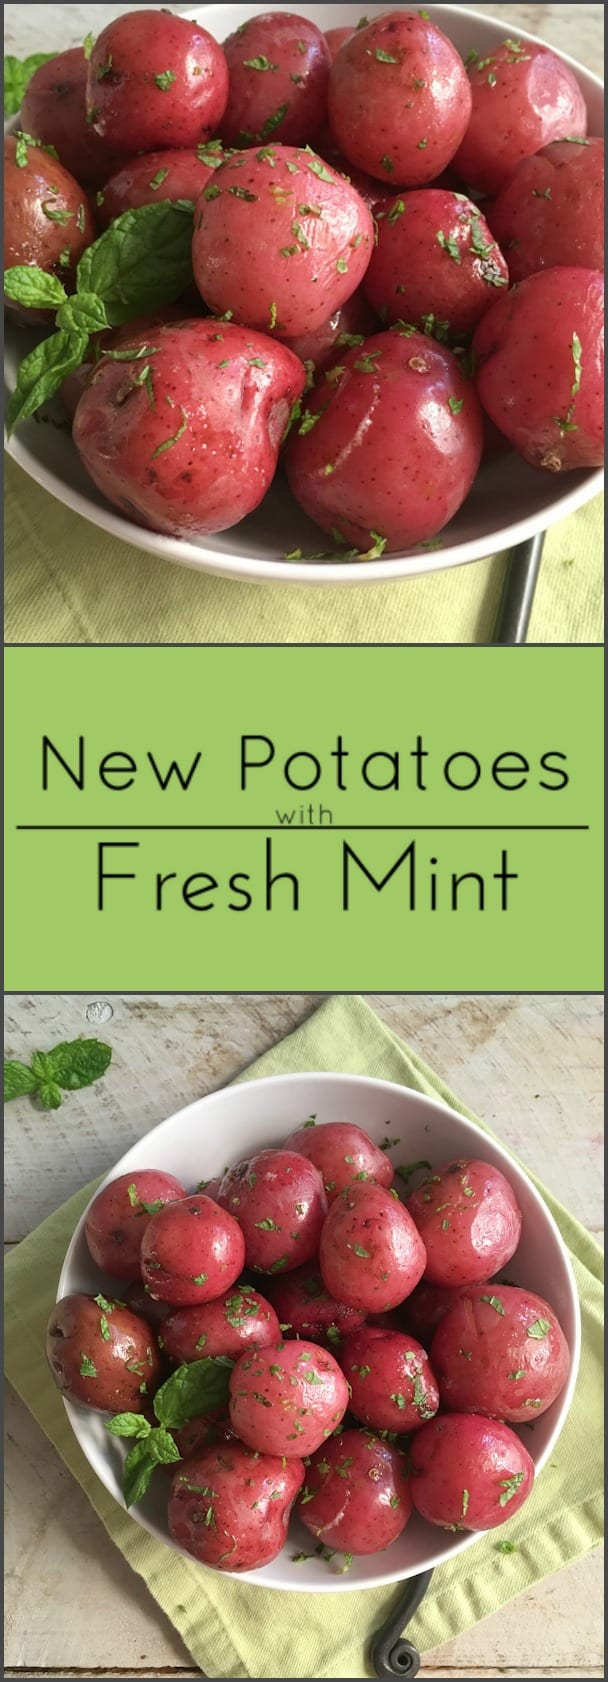 Minted new potatoes are a great side dish and naturally gluten free.